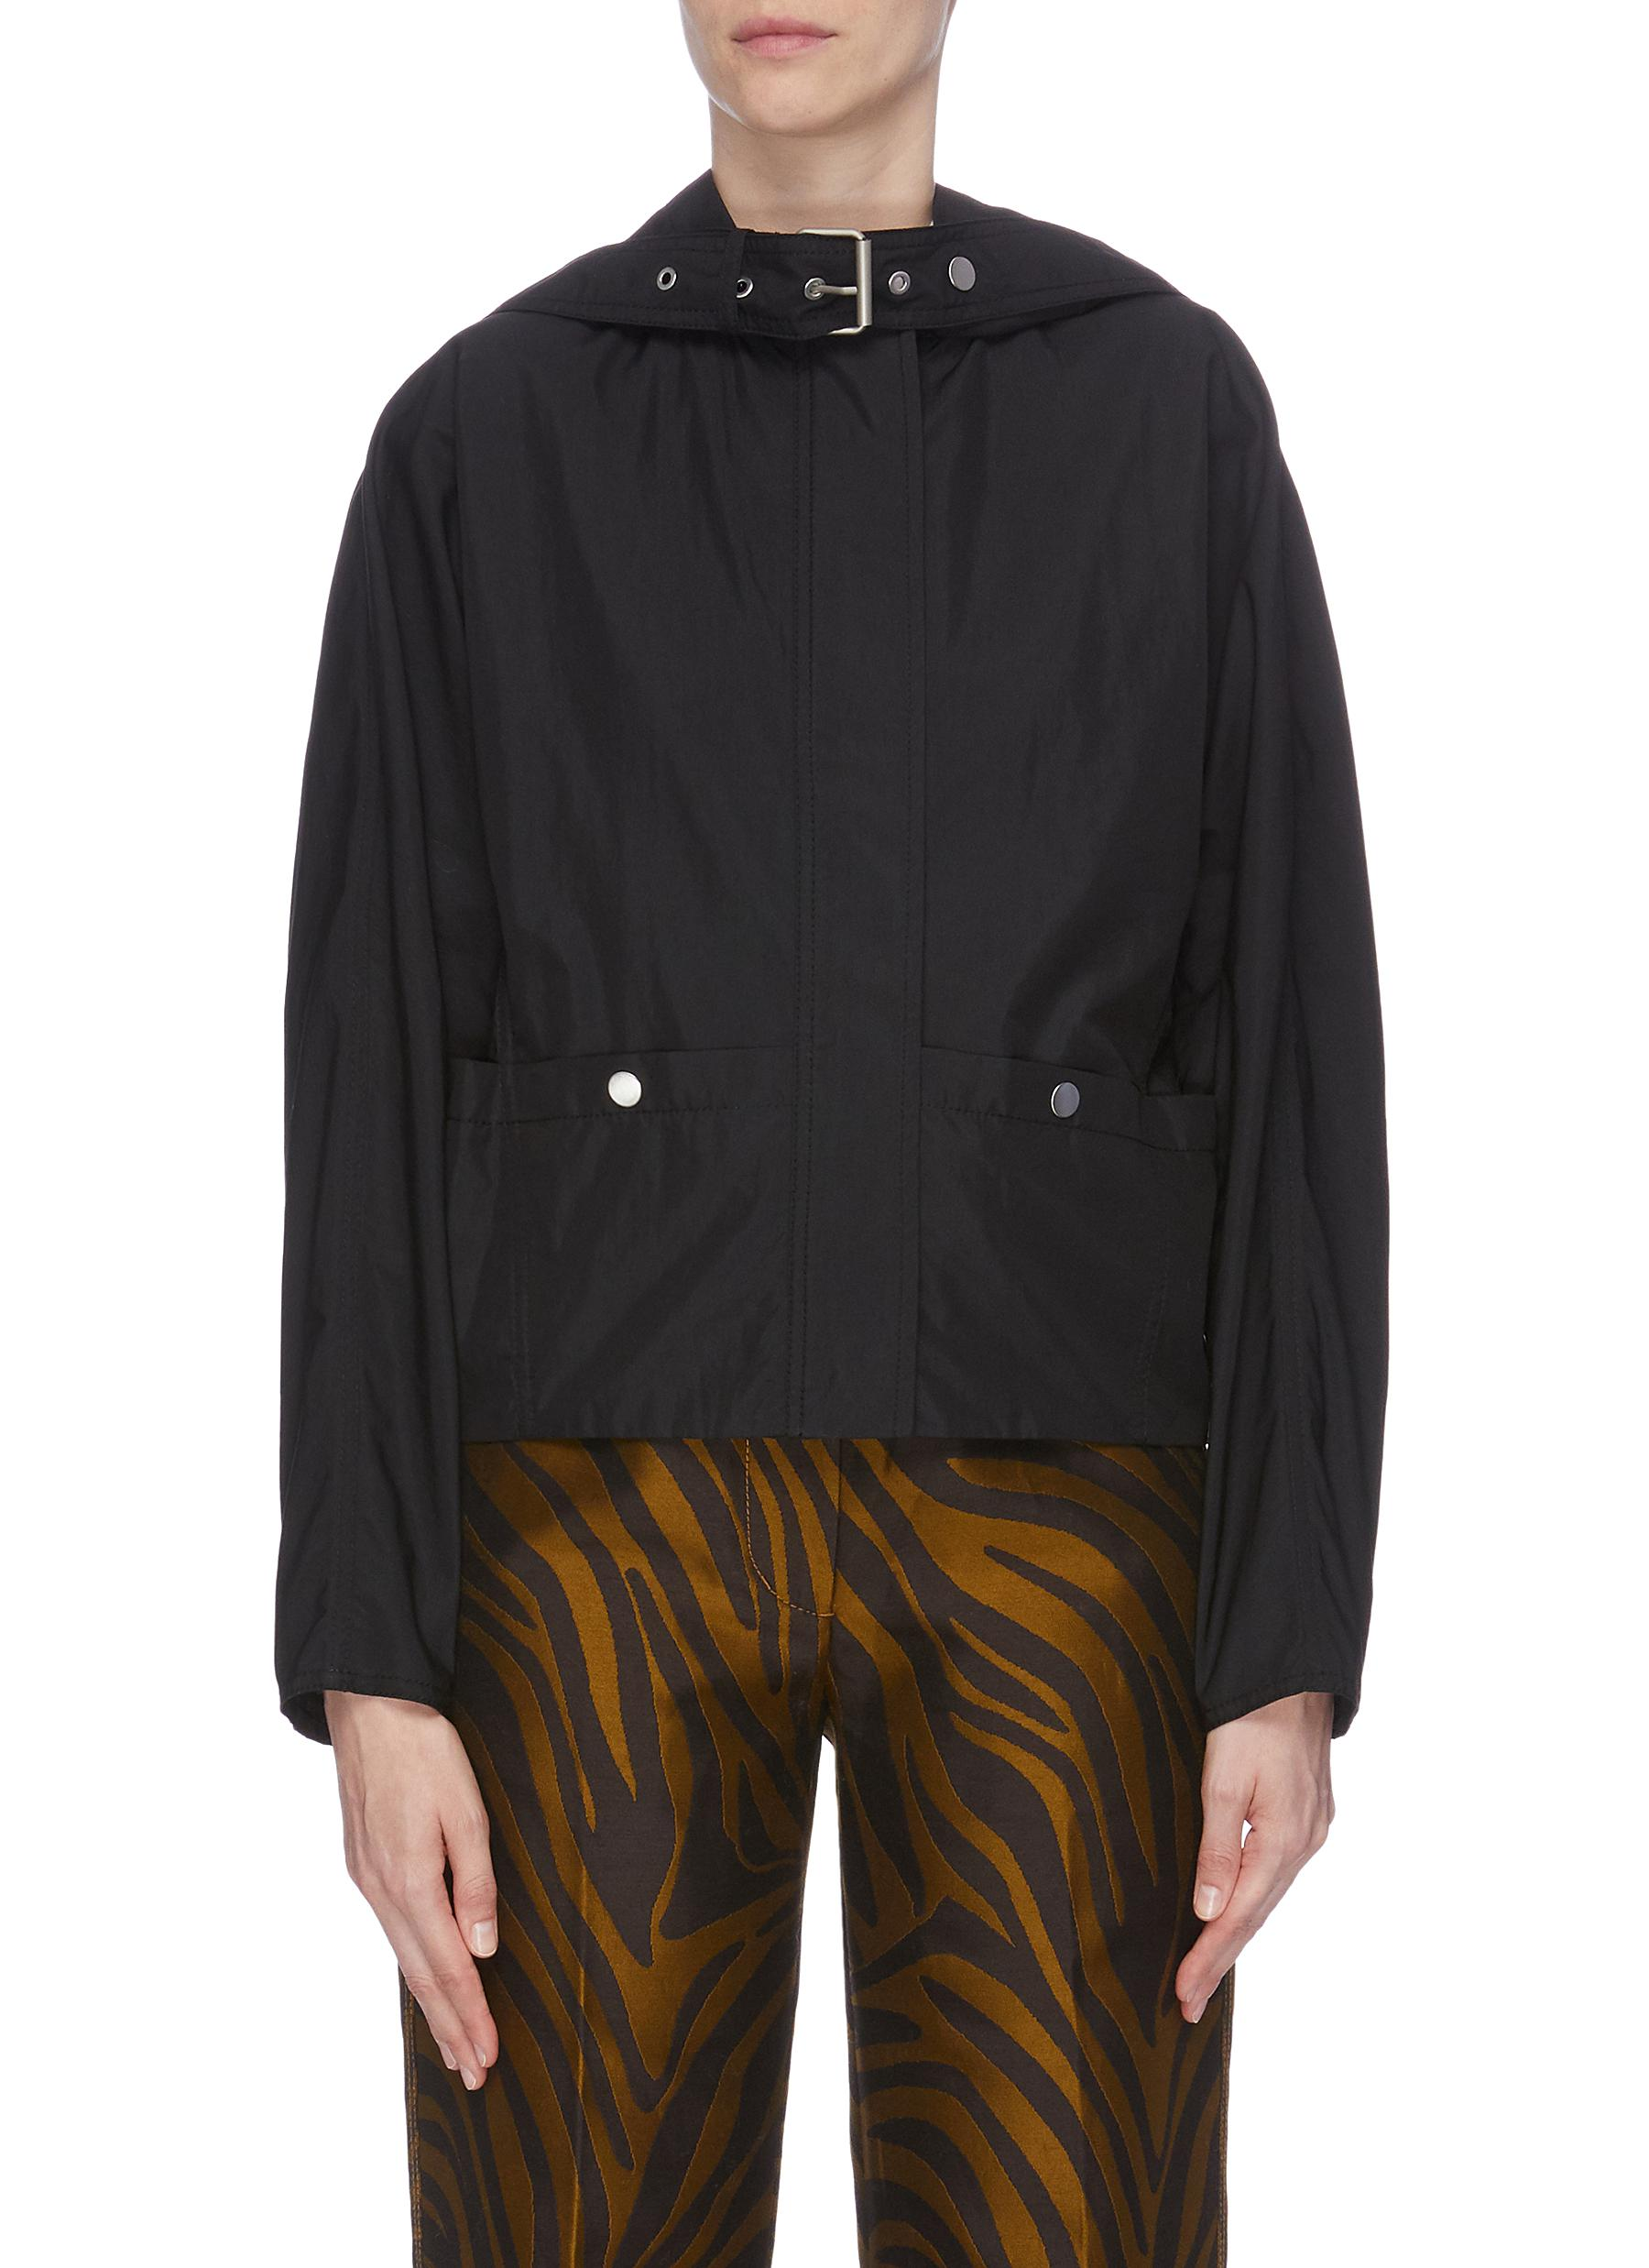 Belt neck hooded track jacket by 3.1 Phillip Lim